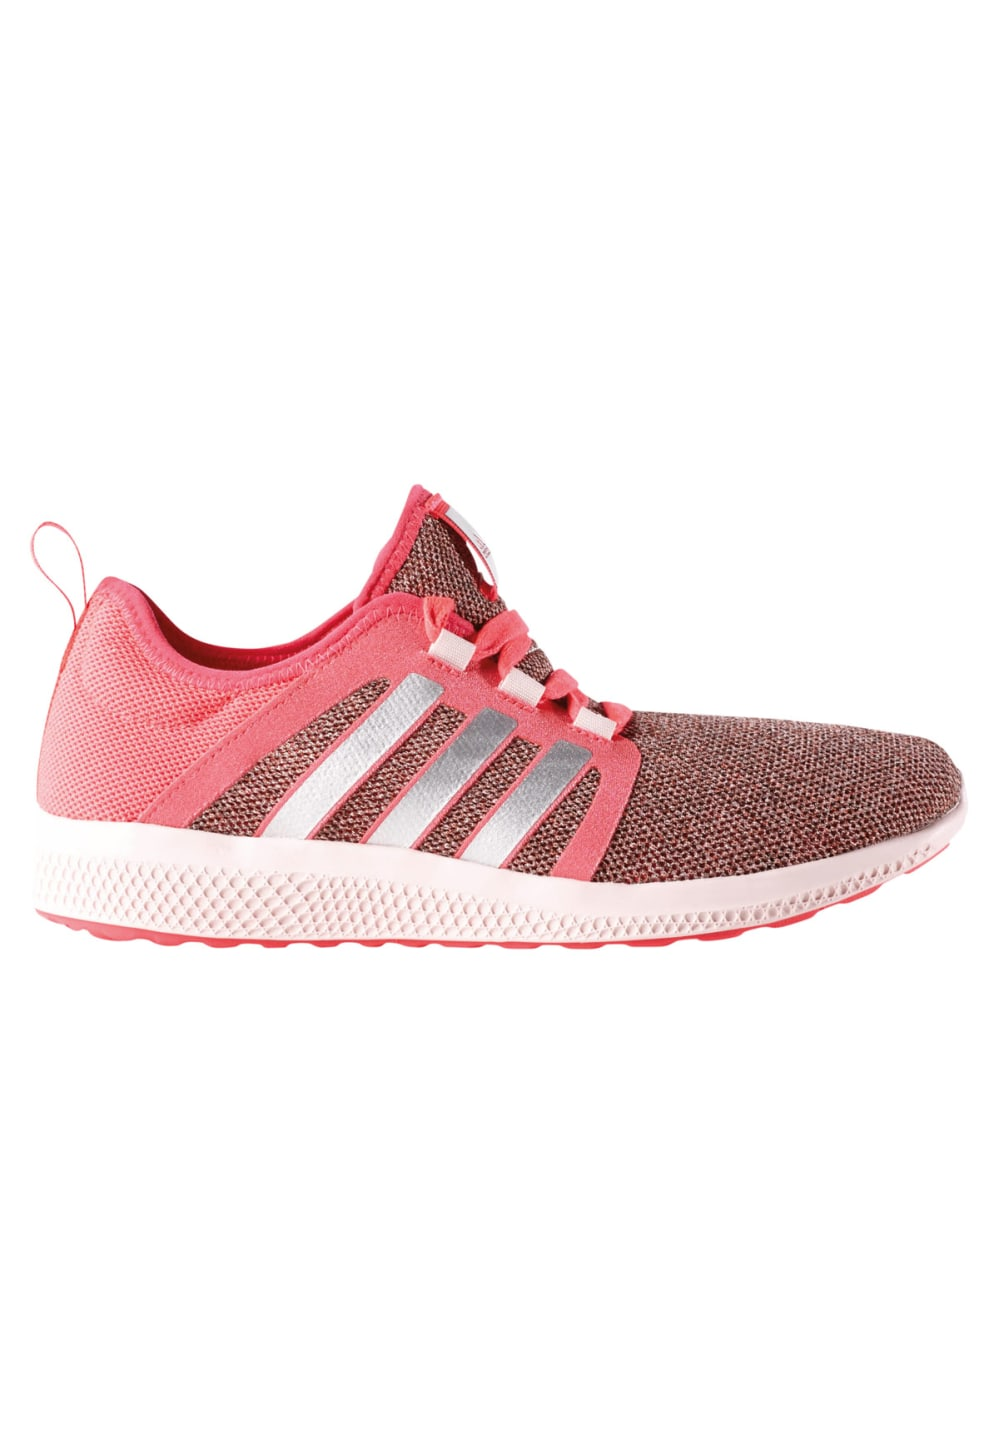 727b606d7 Previous. Next. -60%. adidas. CC Fresh Bounce - Running ...